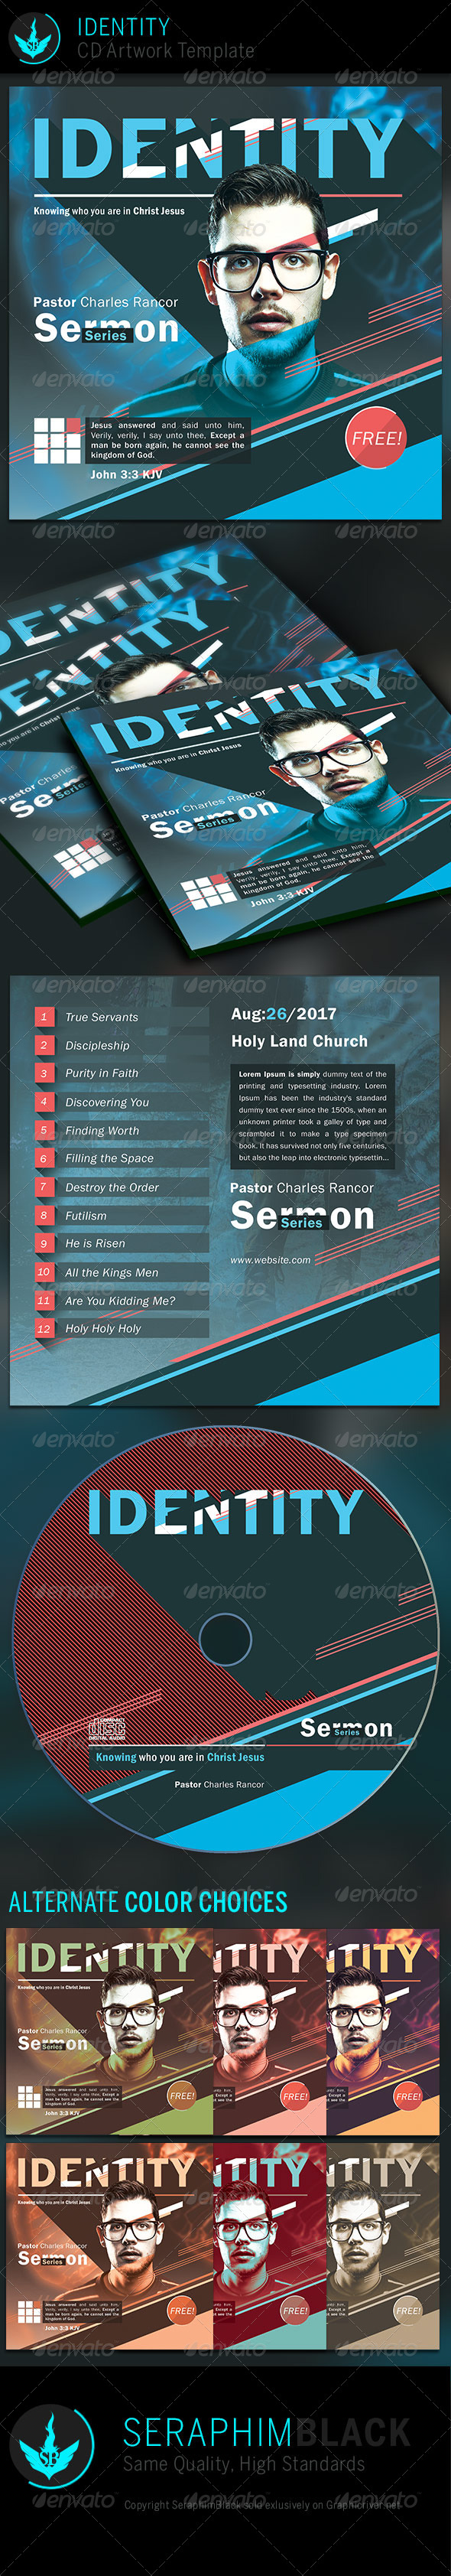 Identity: CD Artwork Template - CD & DVD Artwork Print Templates